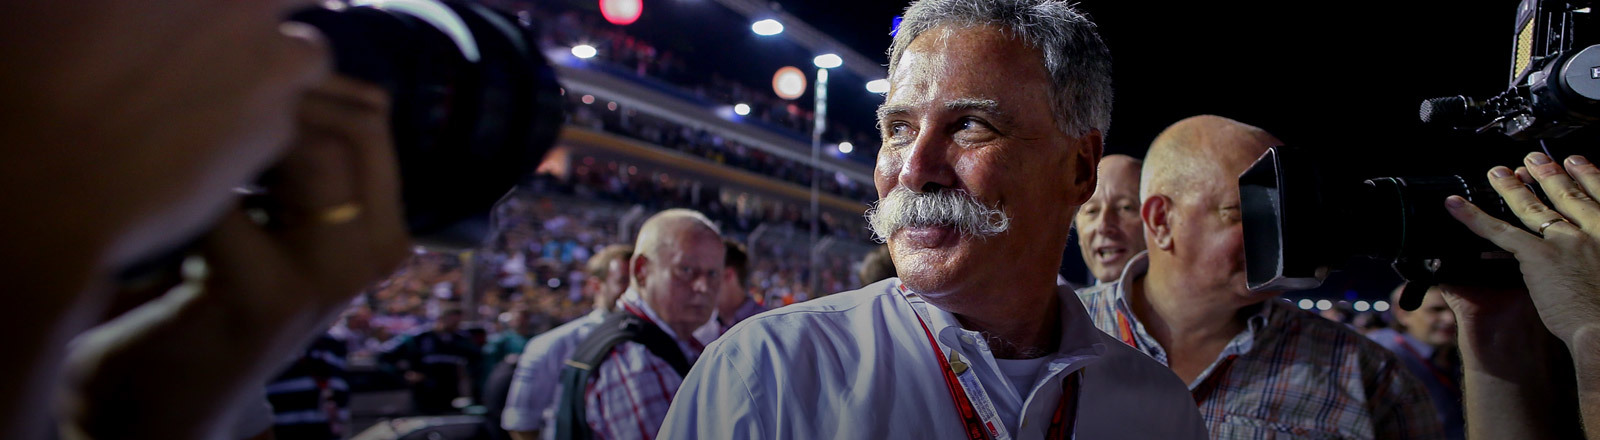 Formel-1-Chef Chase Carey